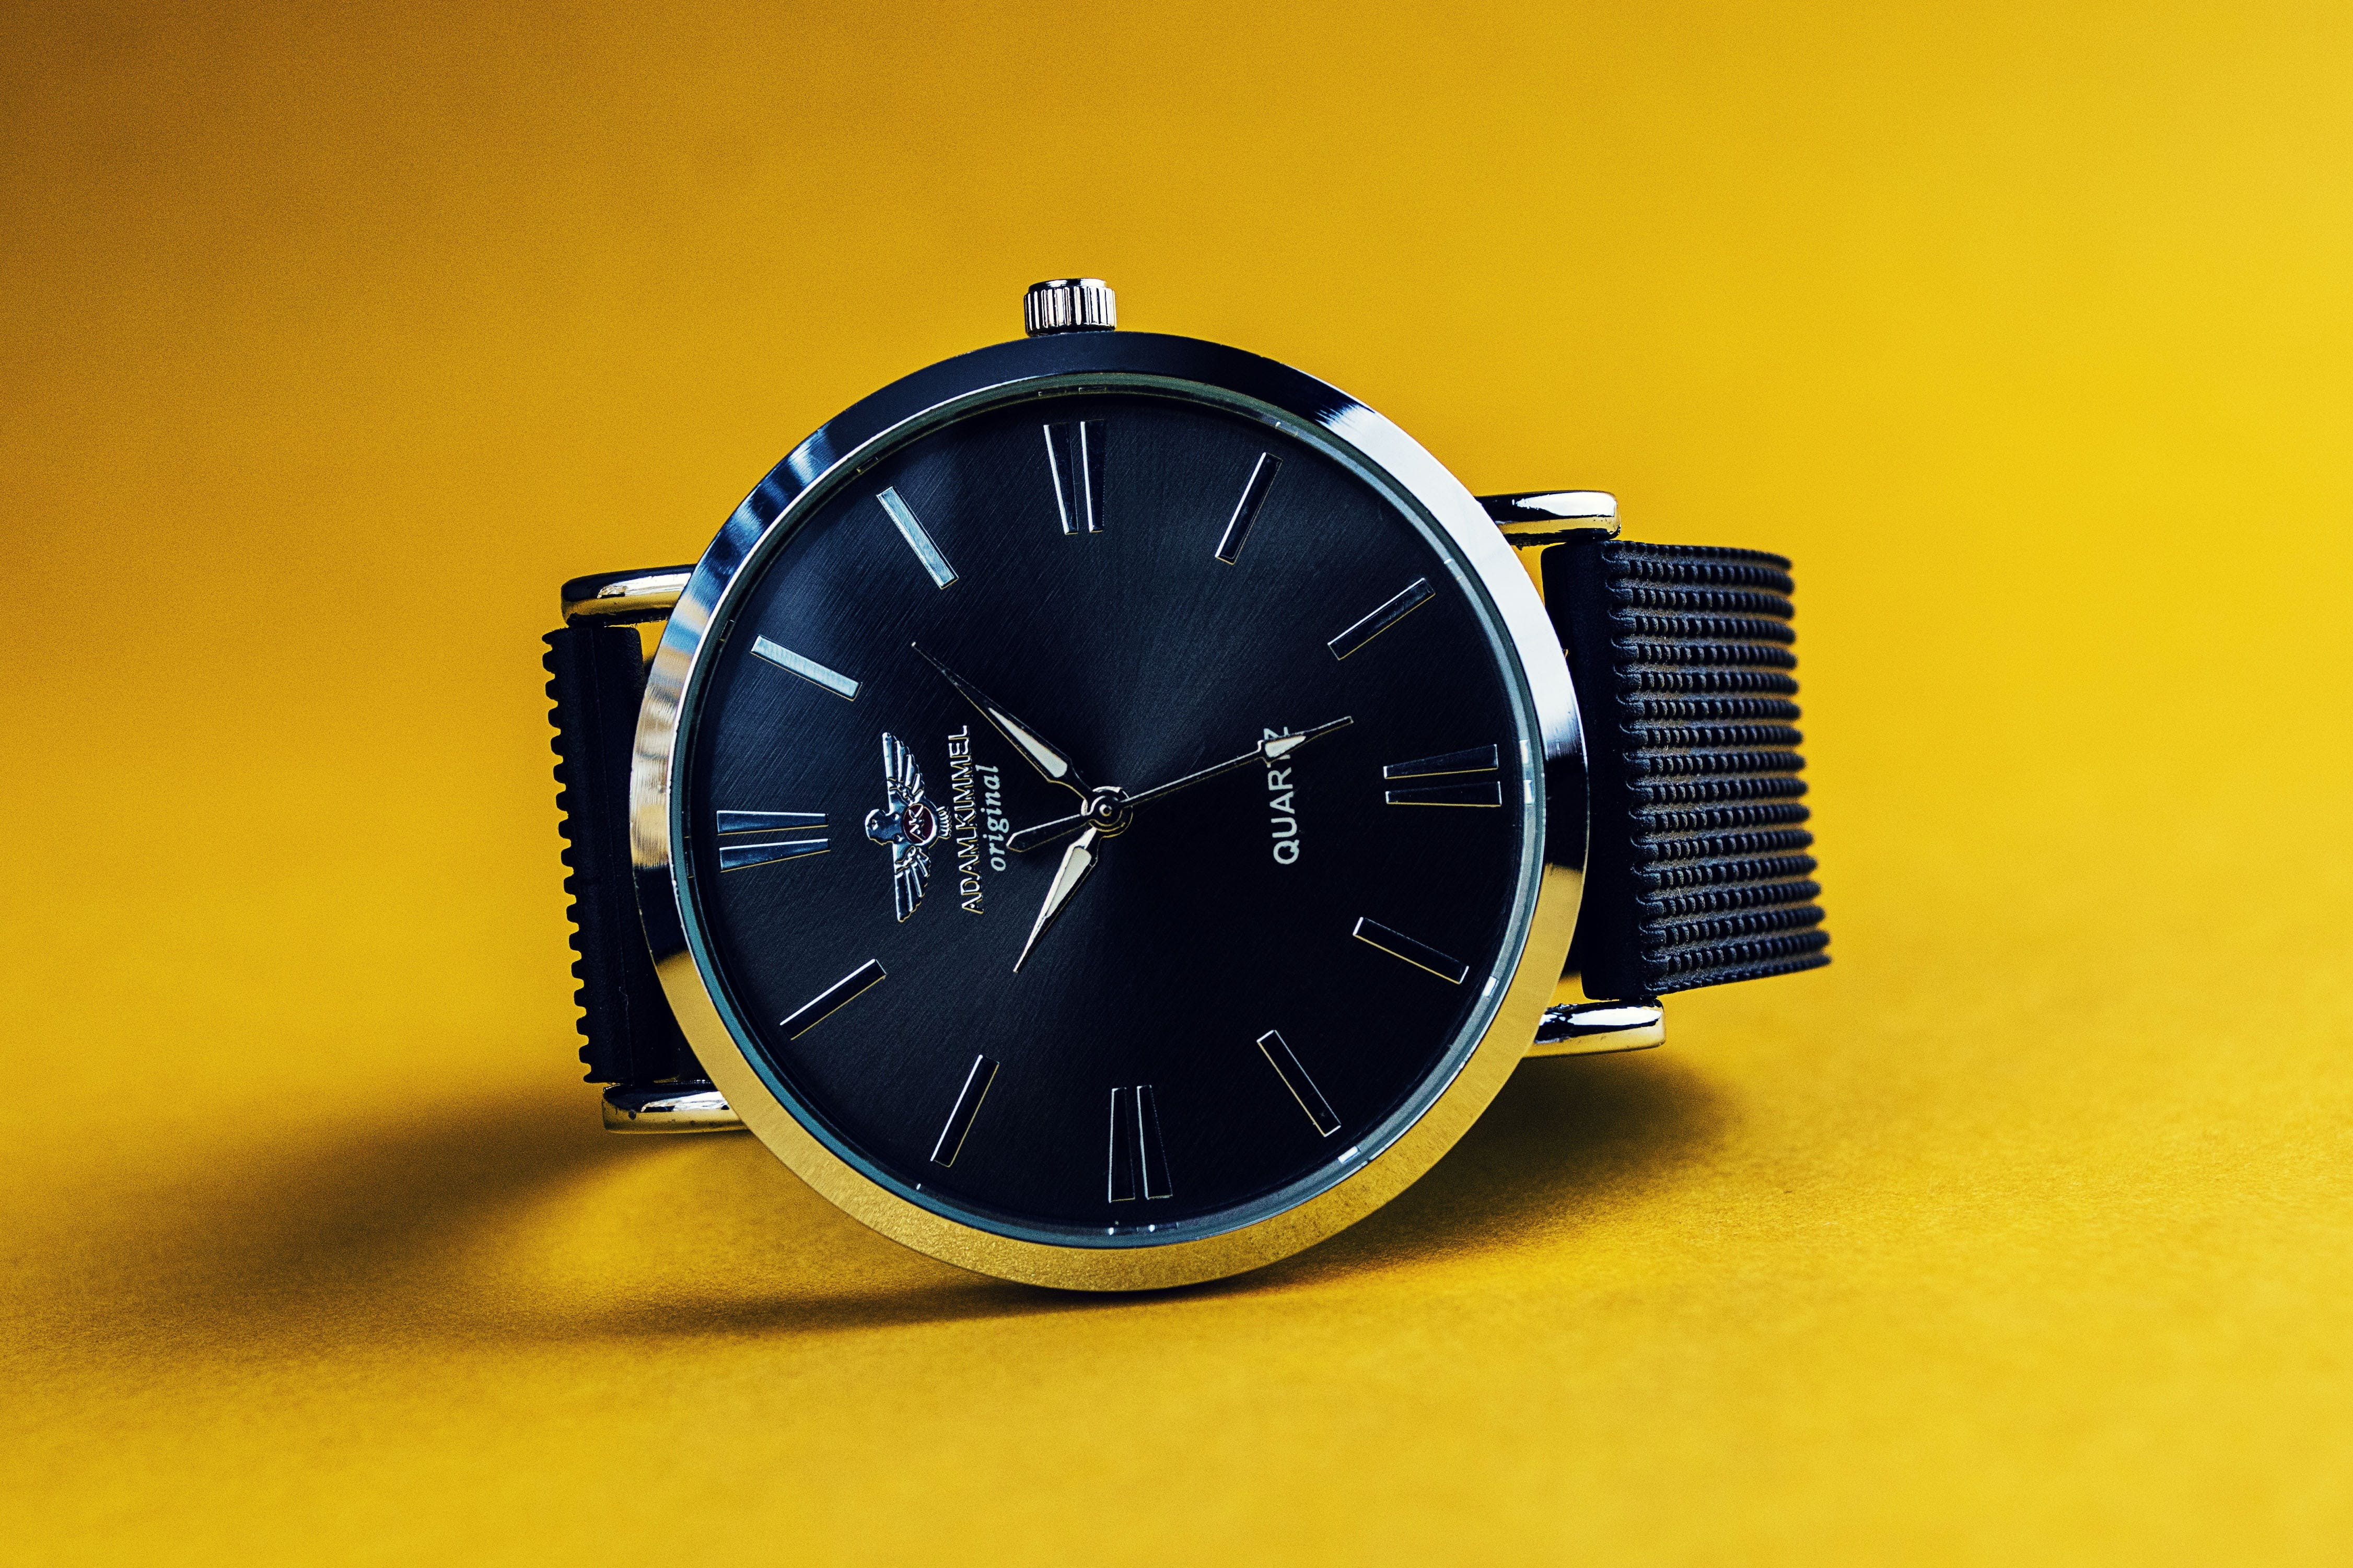 Round Silver-colored Analog Watch With Black Strap